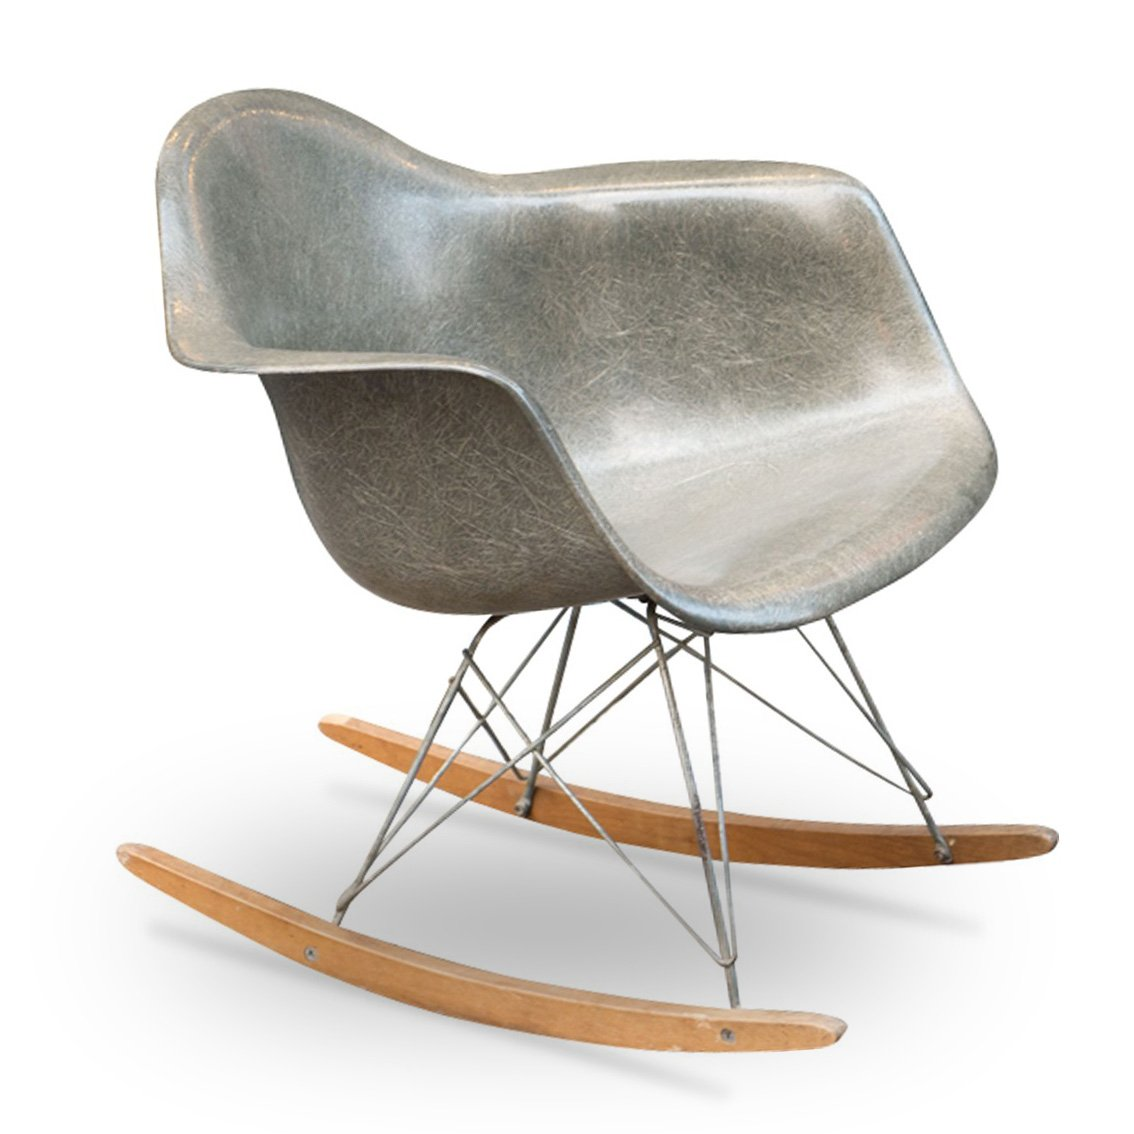 Eanes Chair Vintage Rocking Chair By Charles Ray Eames For Herman Miller 1950s